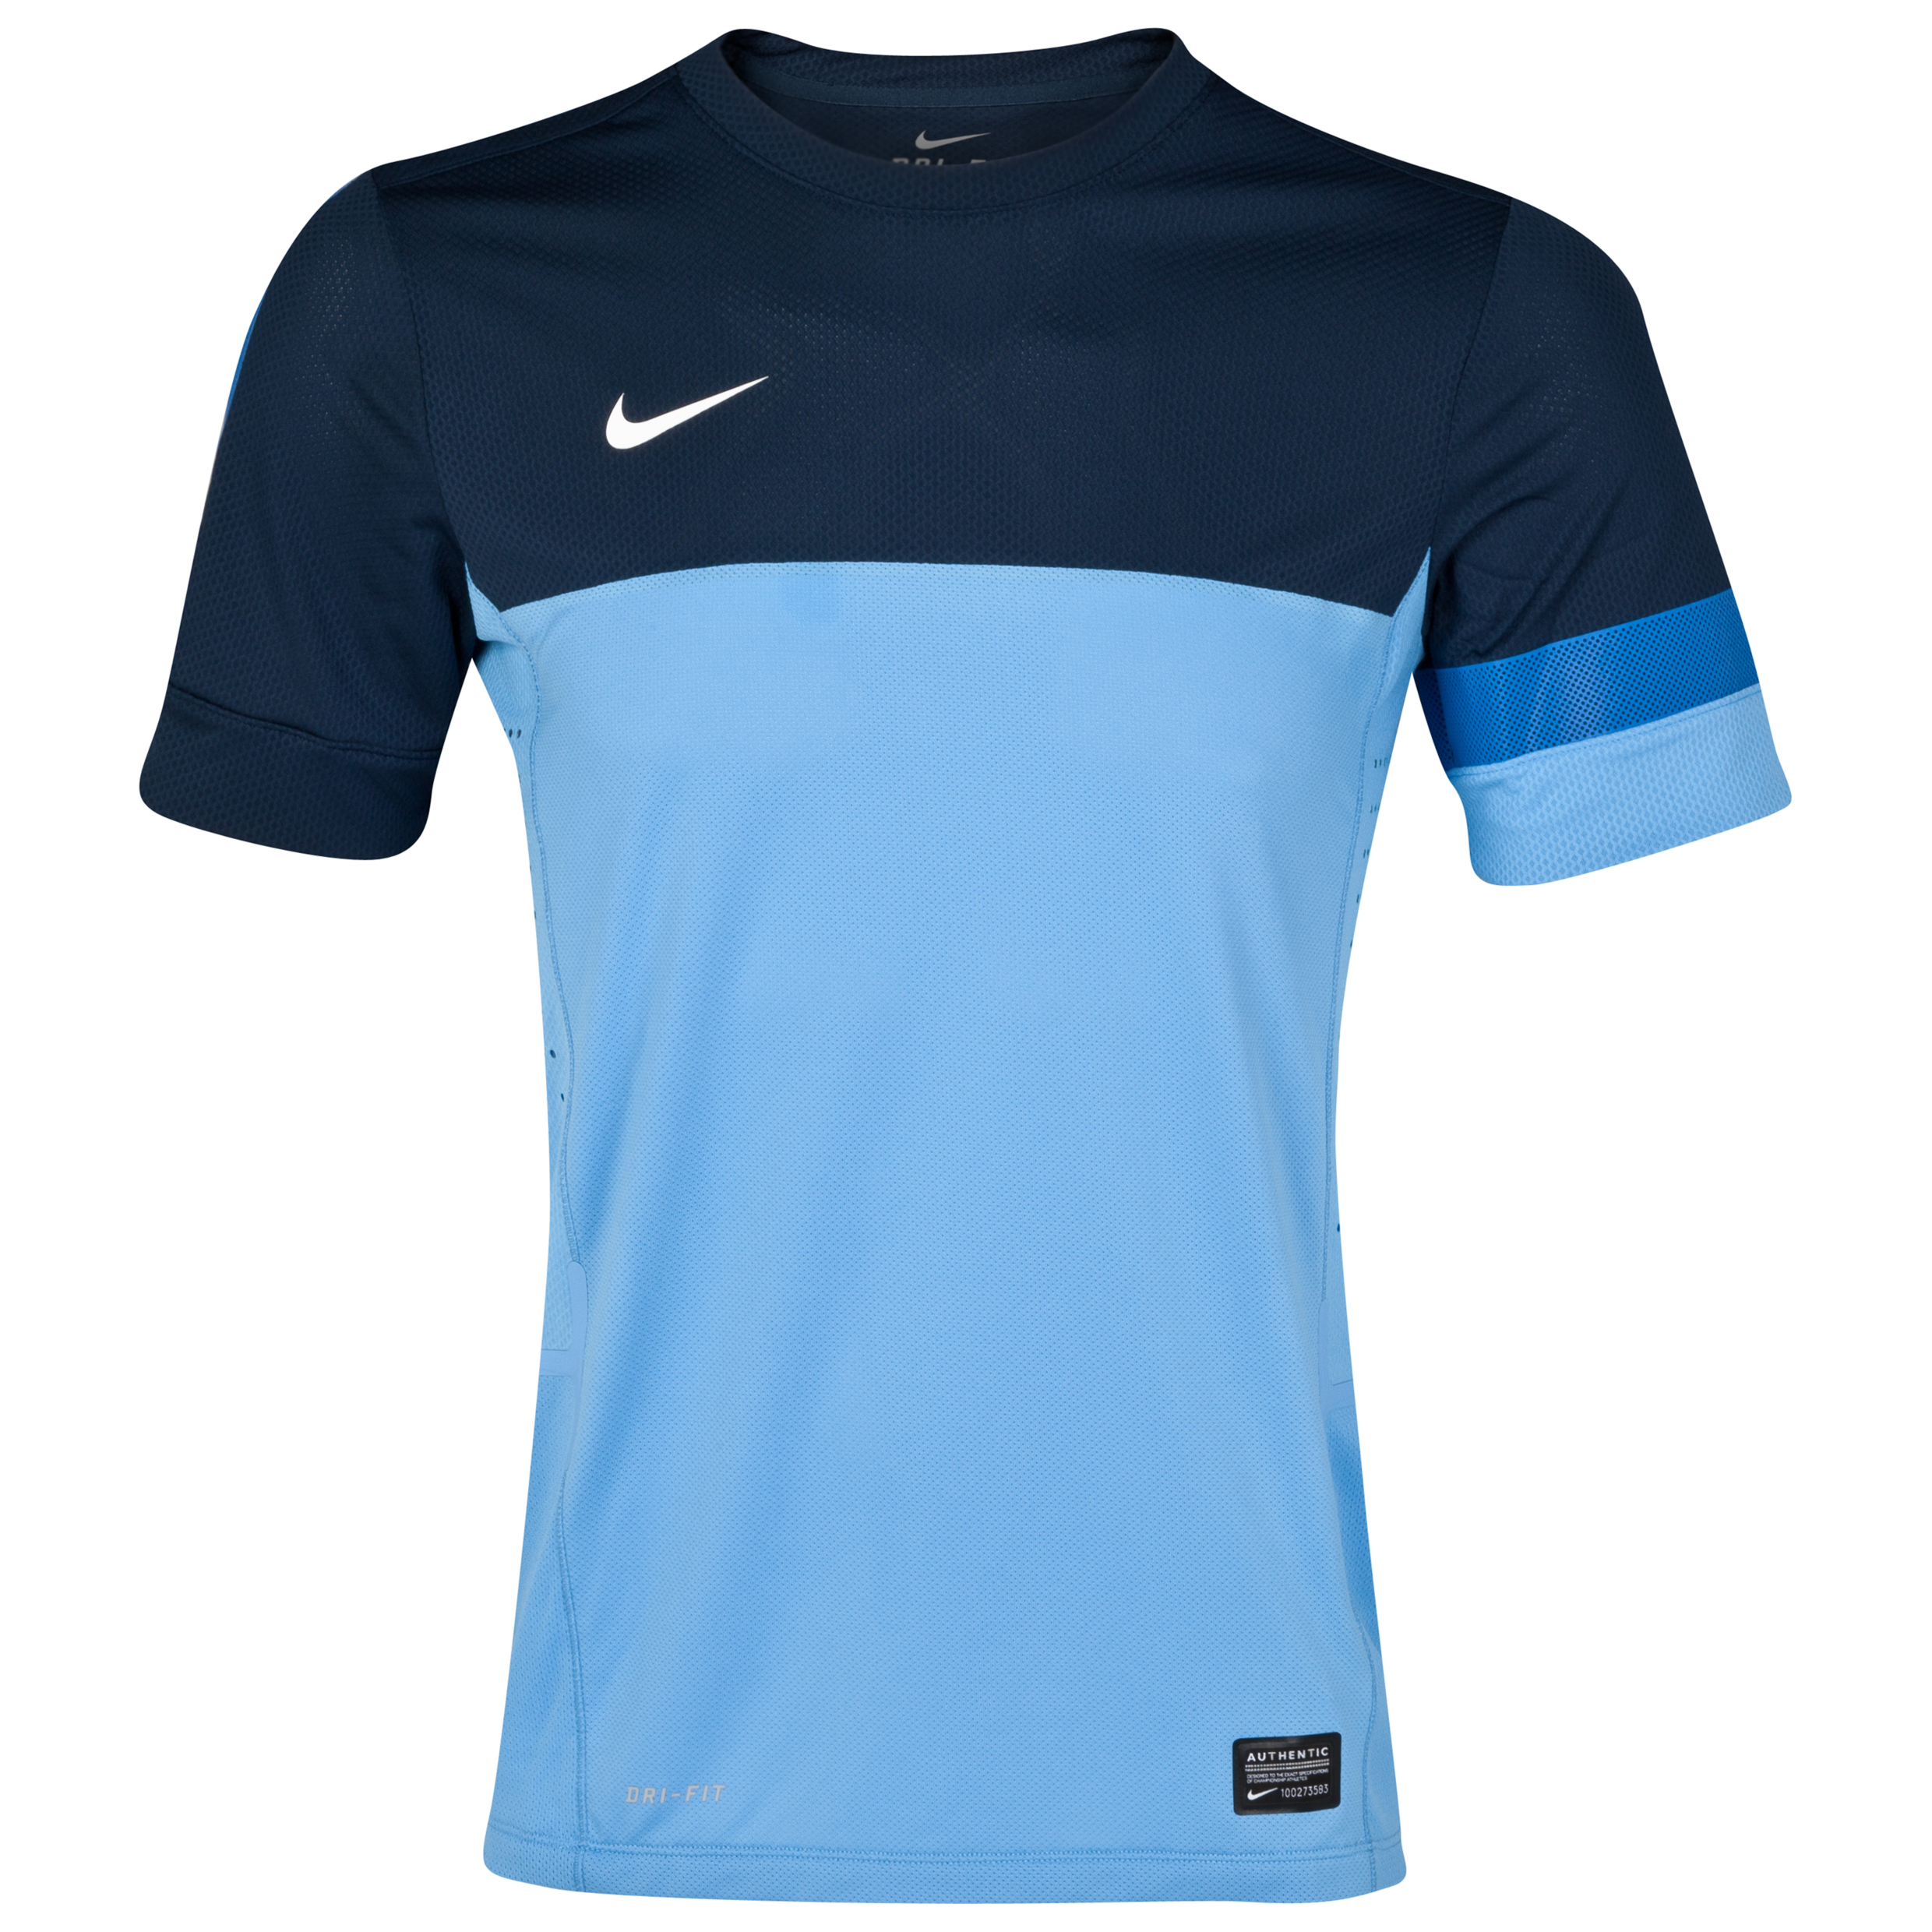 Nike Elite Training Top - University Blue/Light Midnight/White